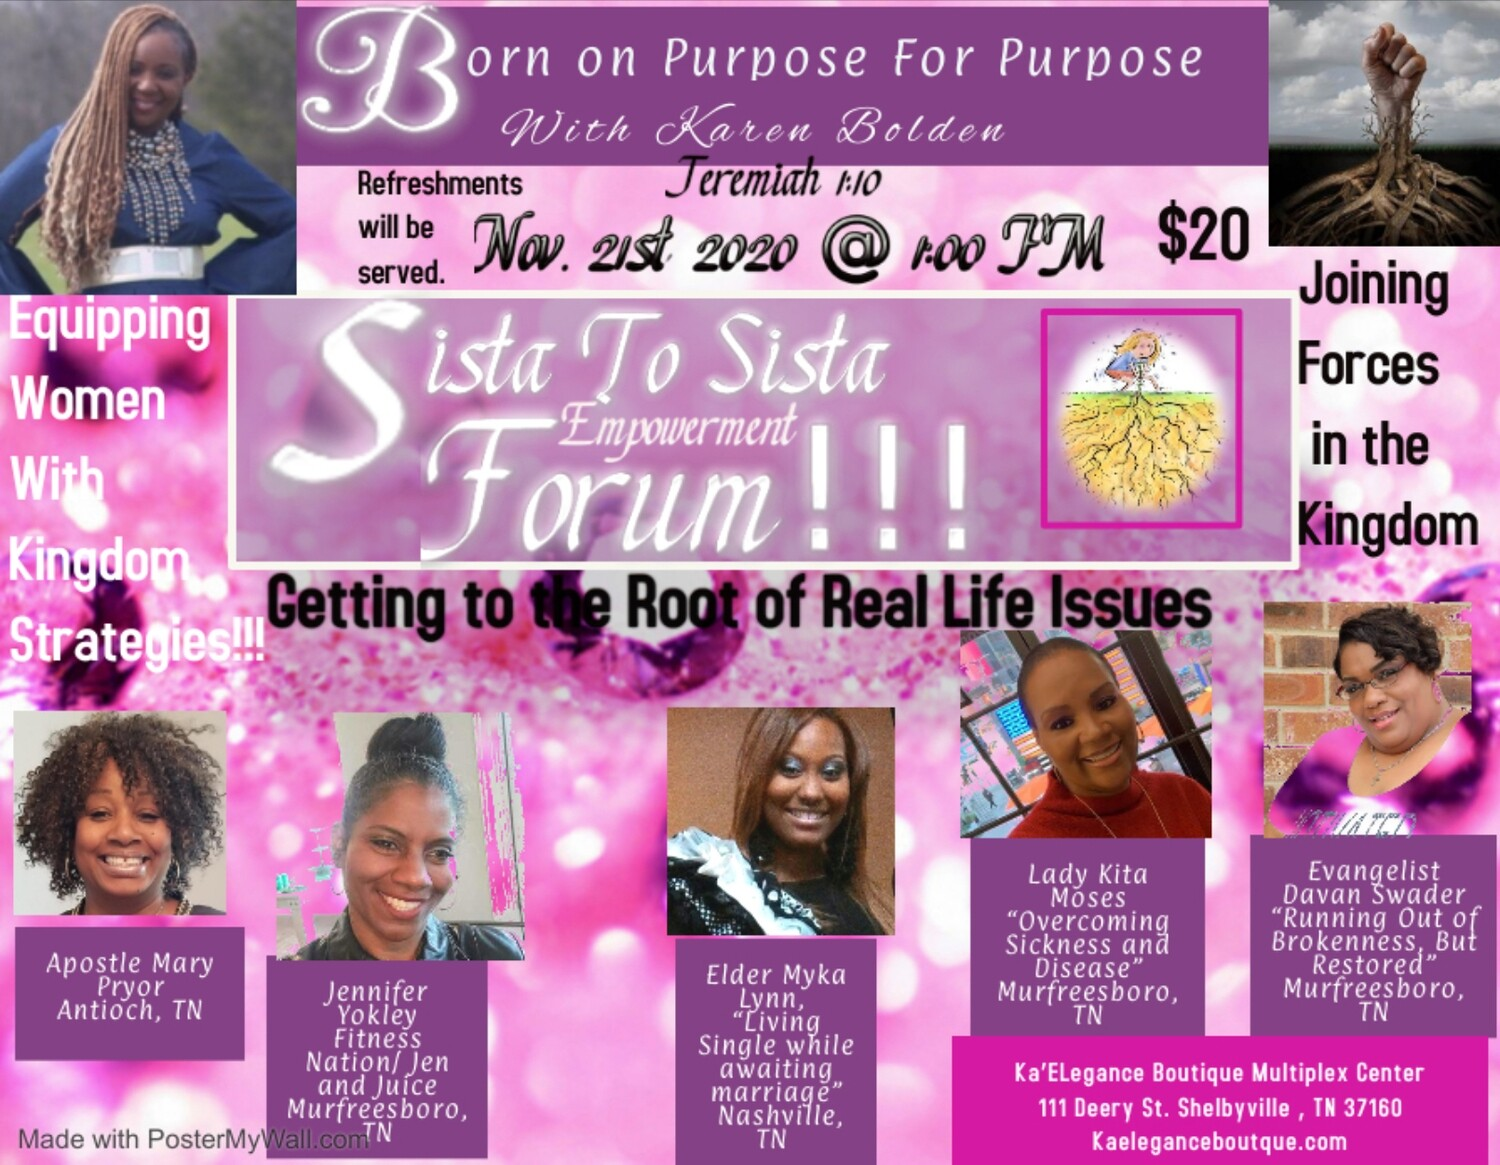 Born on Purpose for Purpose Sista to Sista Empowerment Forum